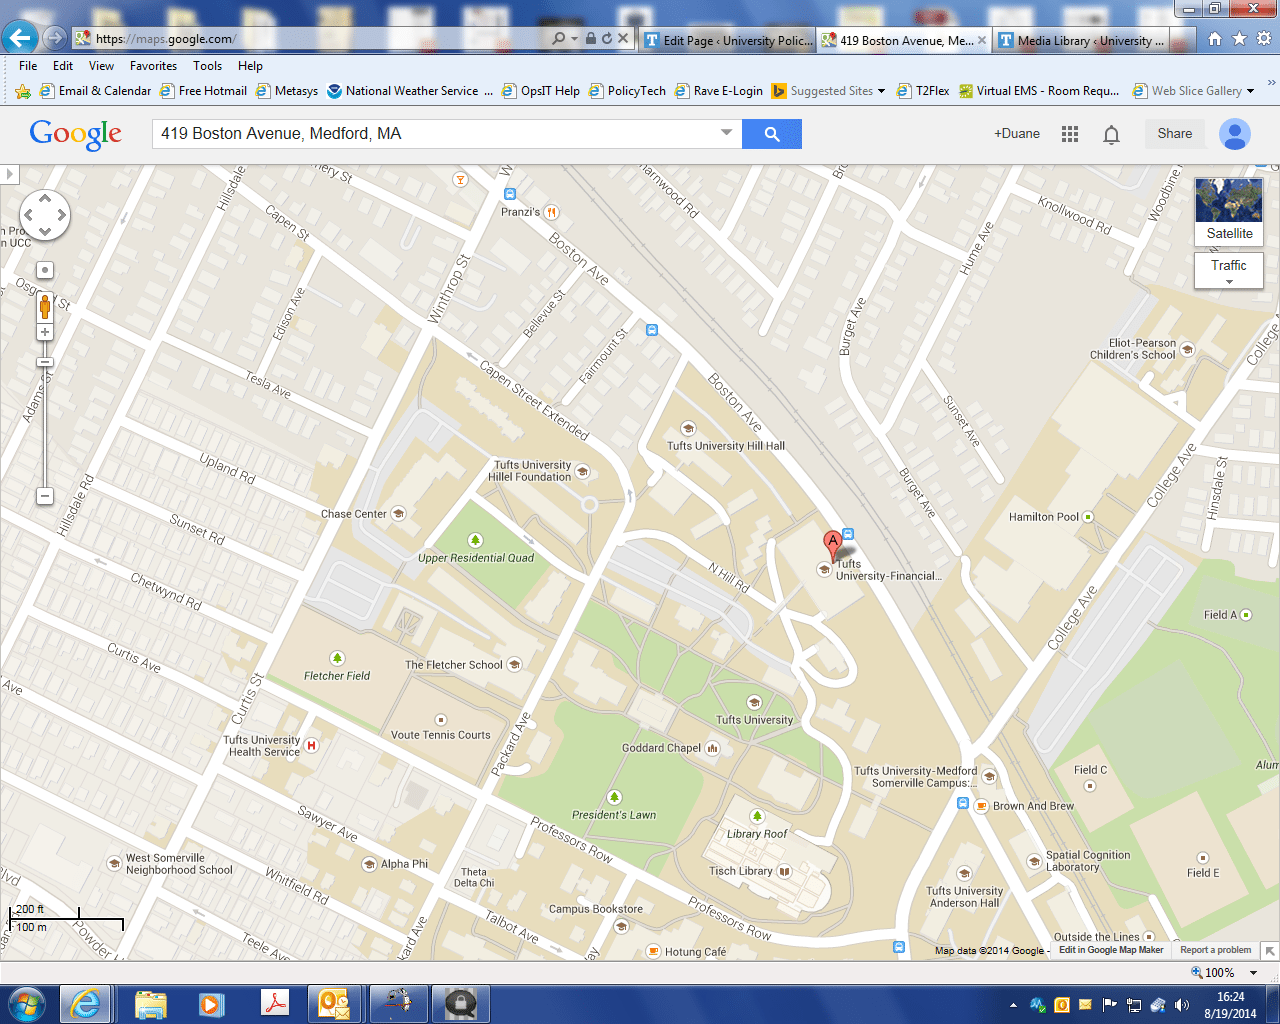 Tufts Medford Campus Map.Tufts Police Medford Somerville Campus Location University Police